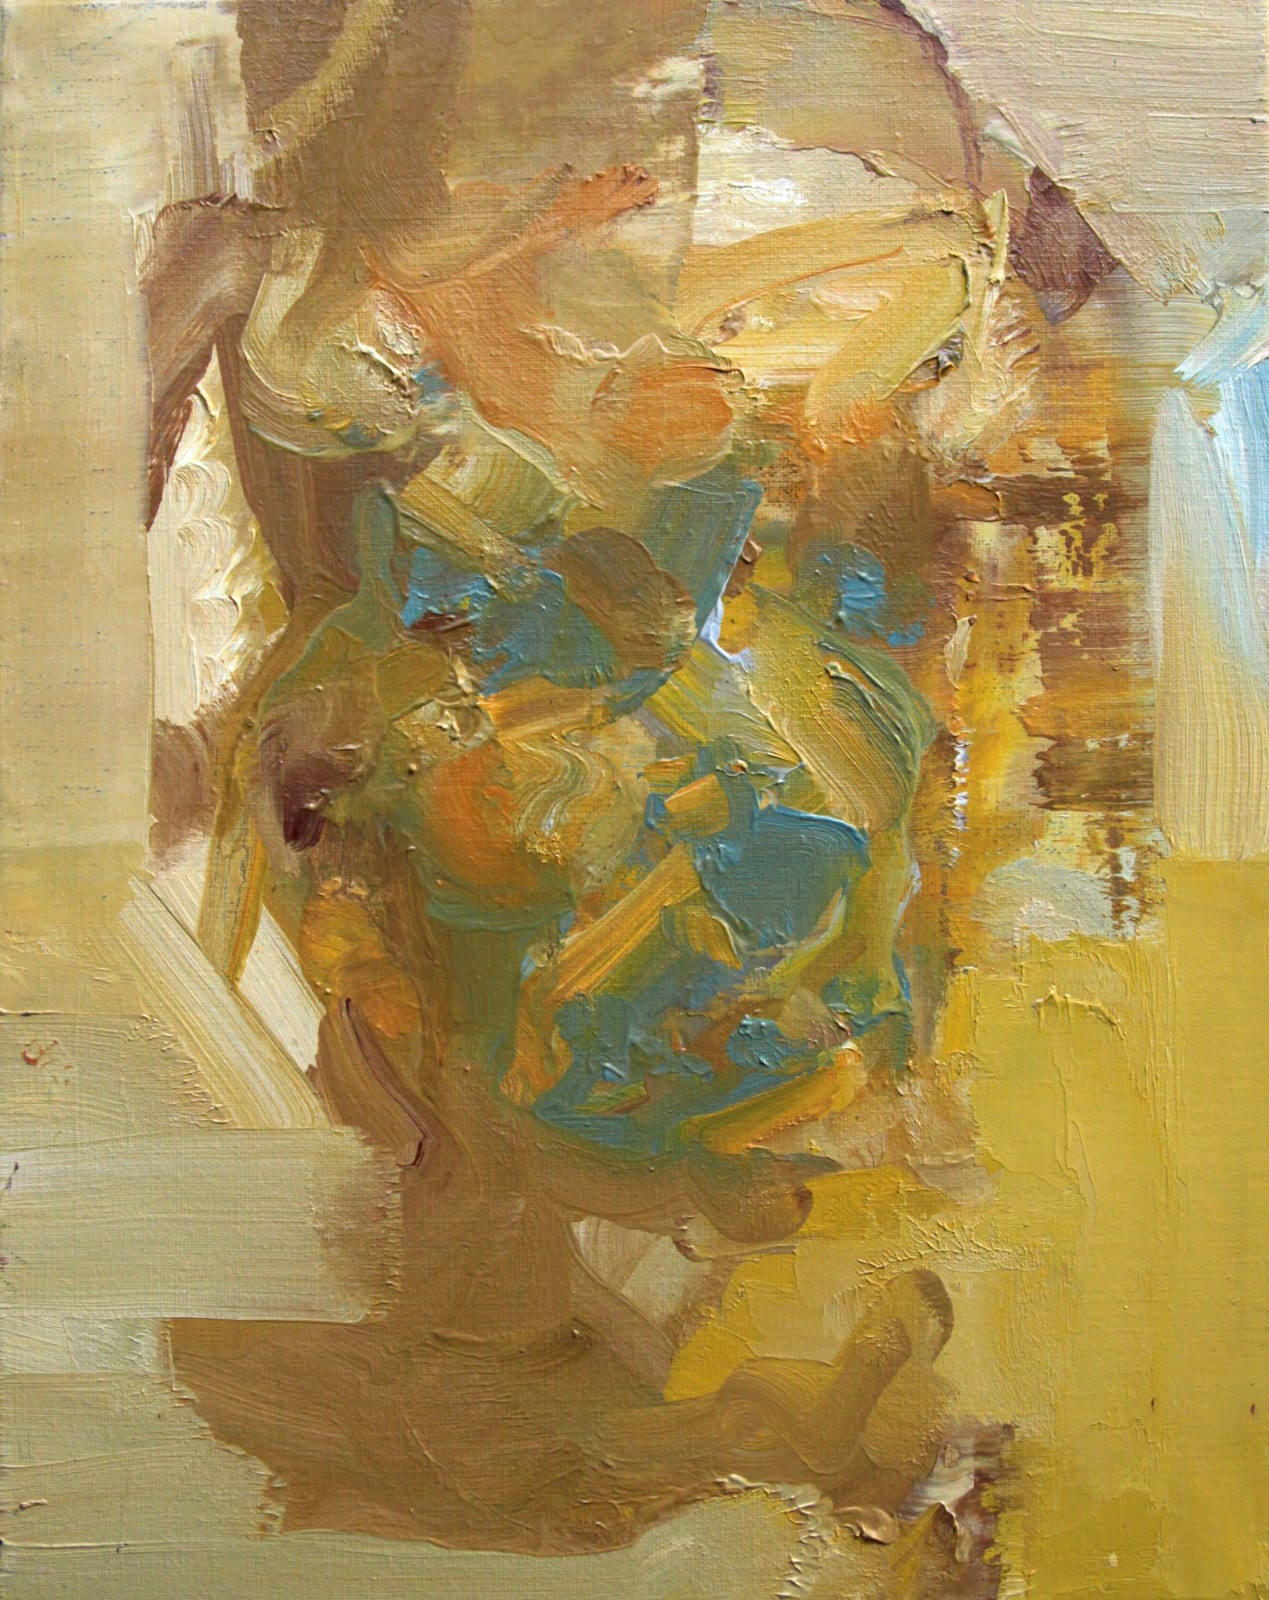 Cian McLoughlin Tronie - Yellow and Blue Head Oil on canvas 14 x 11 inches